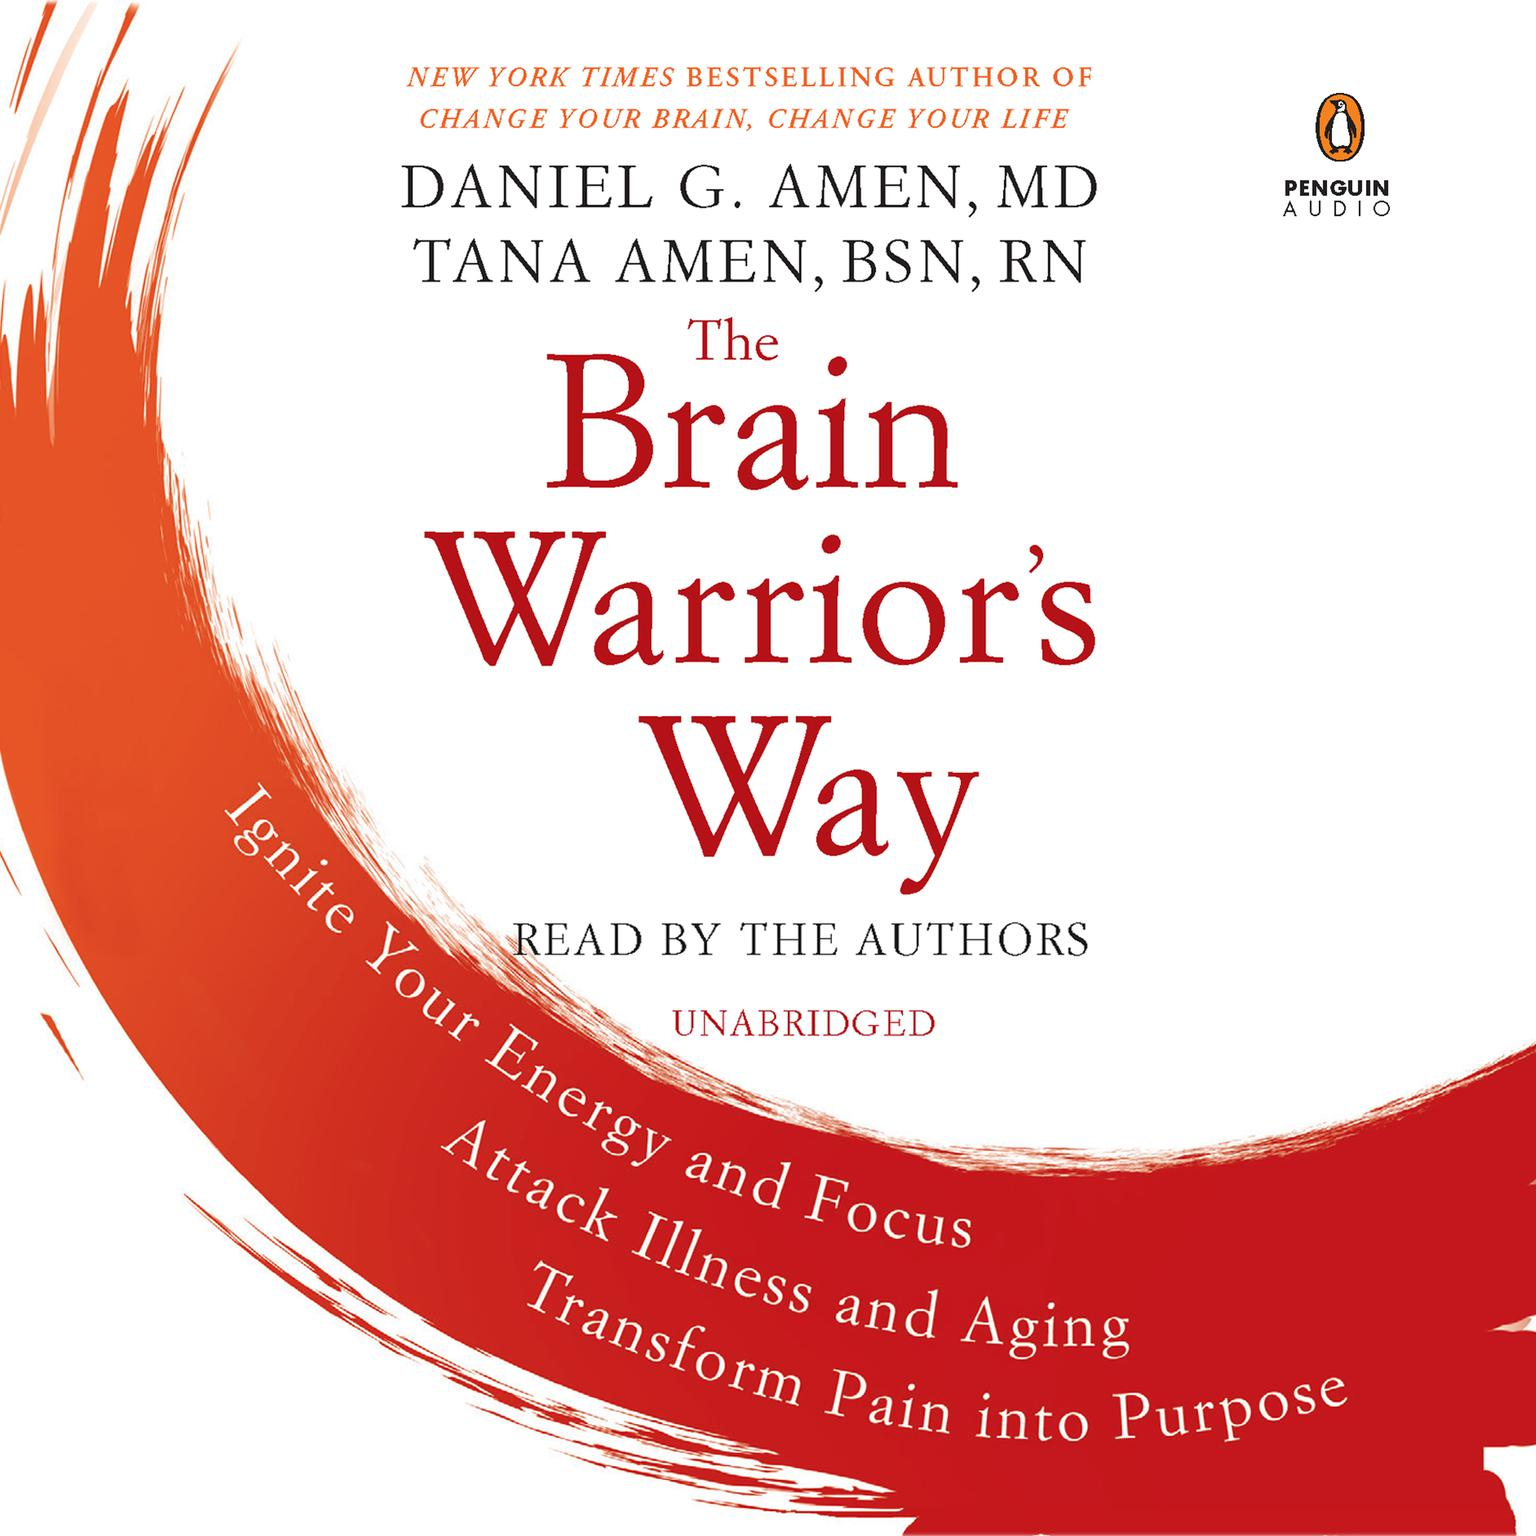 Printable The Brain Warrior's Way: Ignite Your Energy and Focus, Attack Illness and Aging, Transform Pain into Purpose Audiobook Cover Art